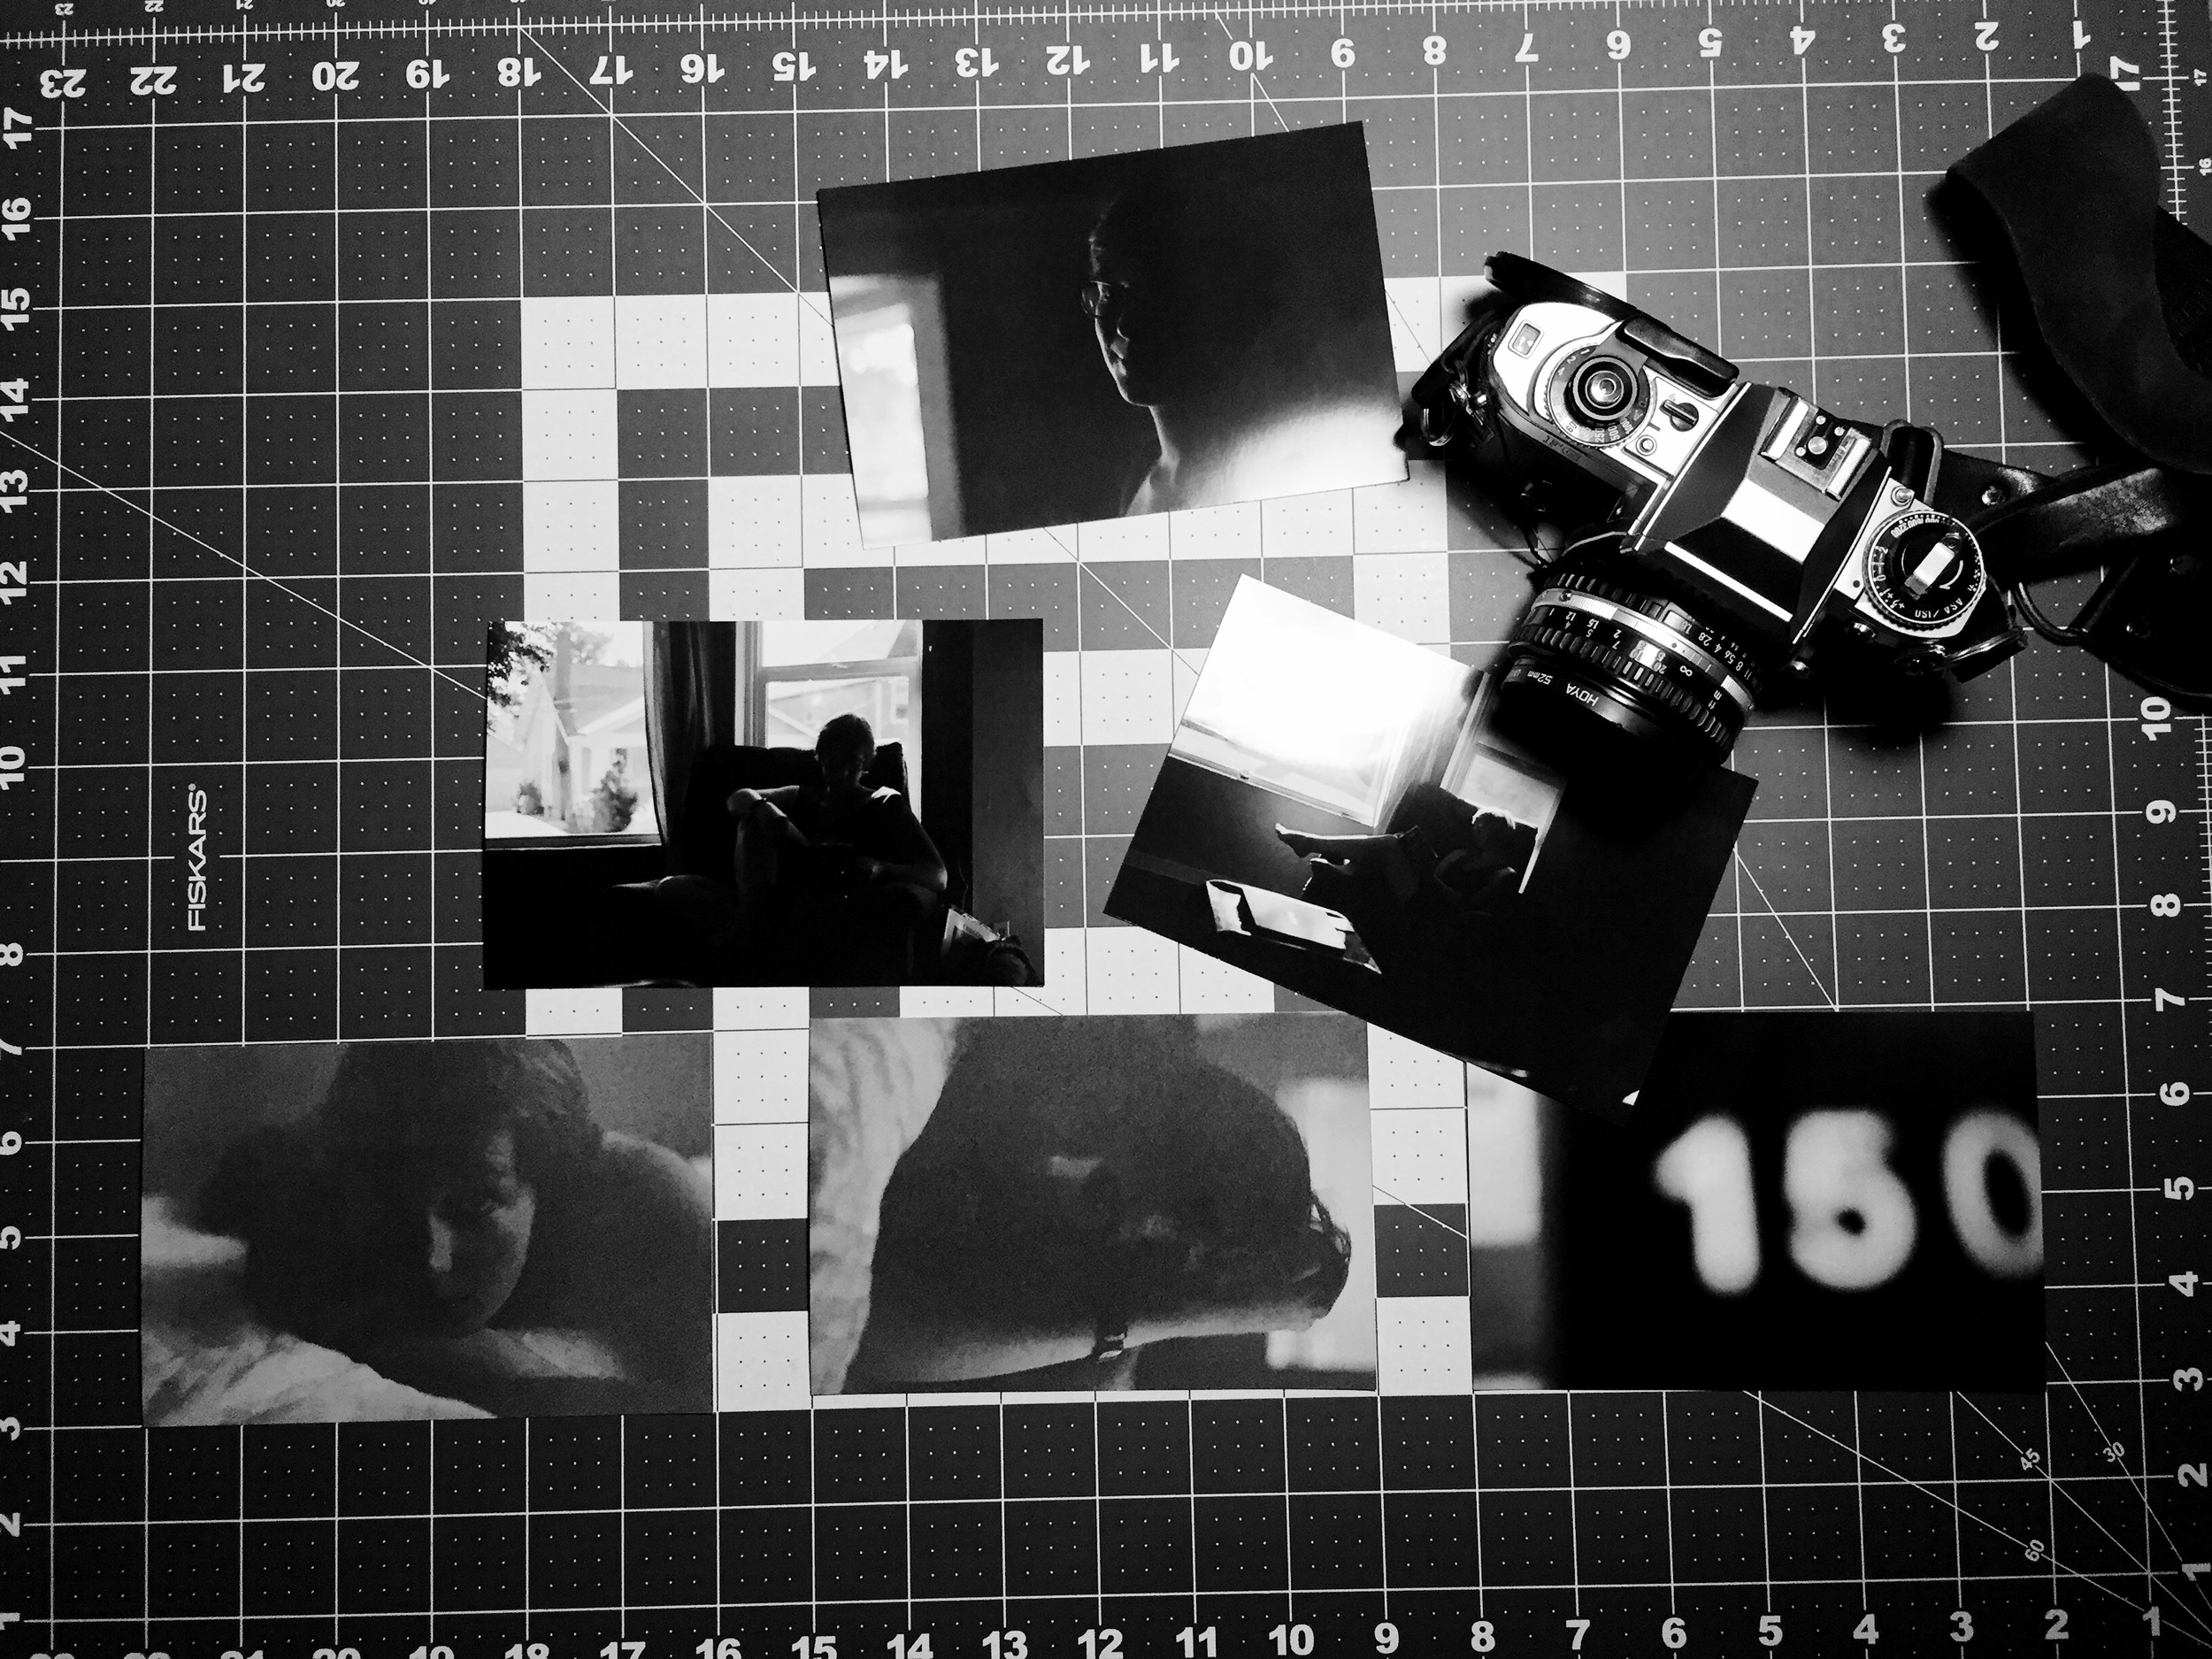 A selection of 'moody' under exposed photographs. The 15:00 is the first photo I took...